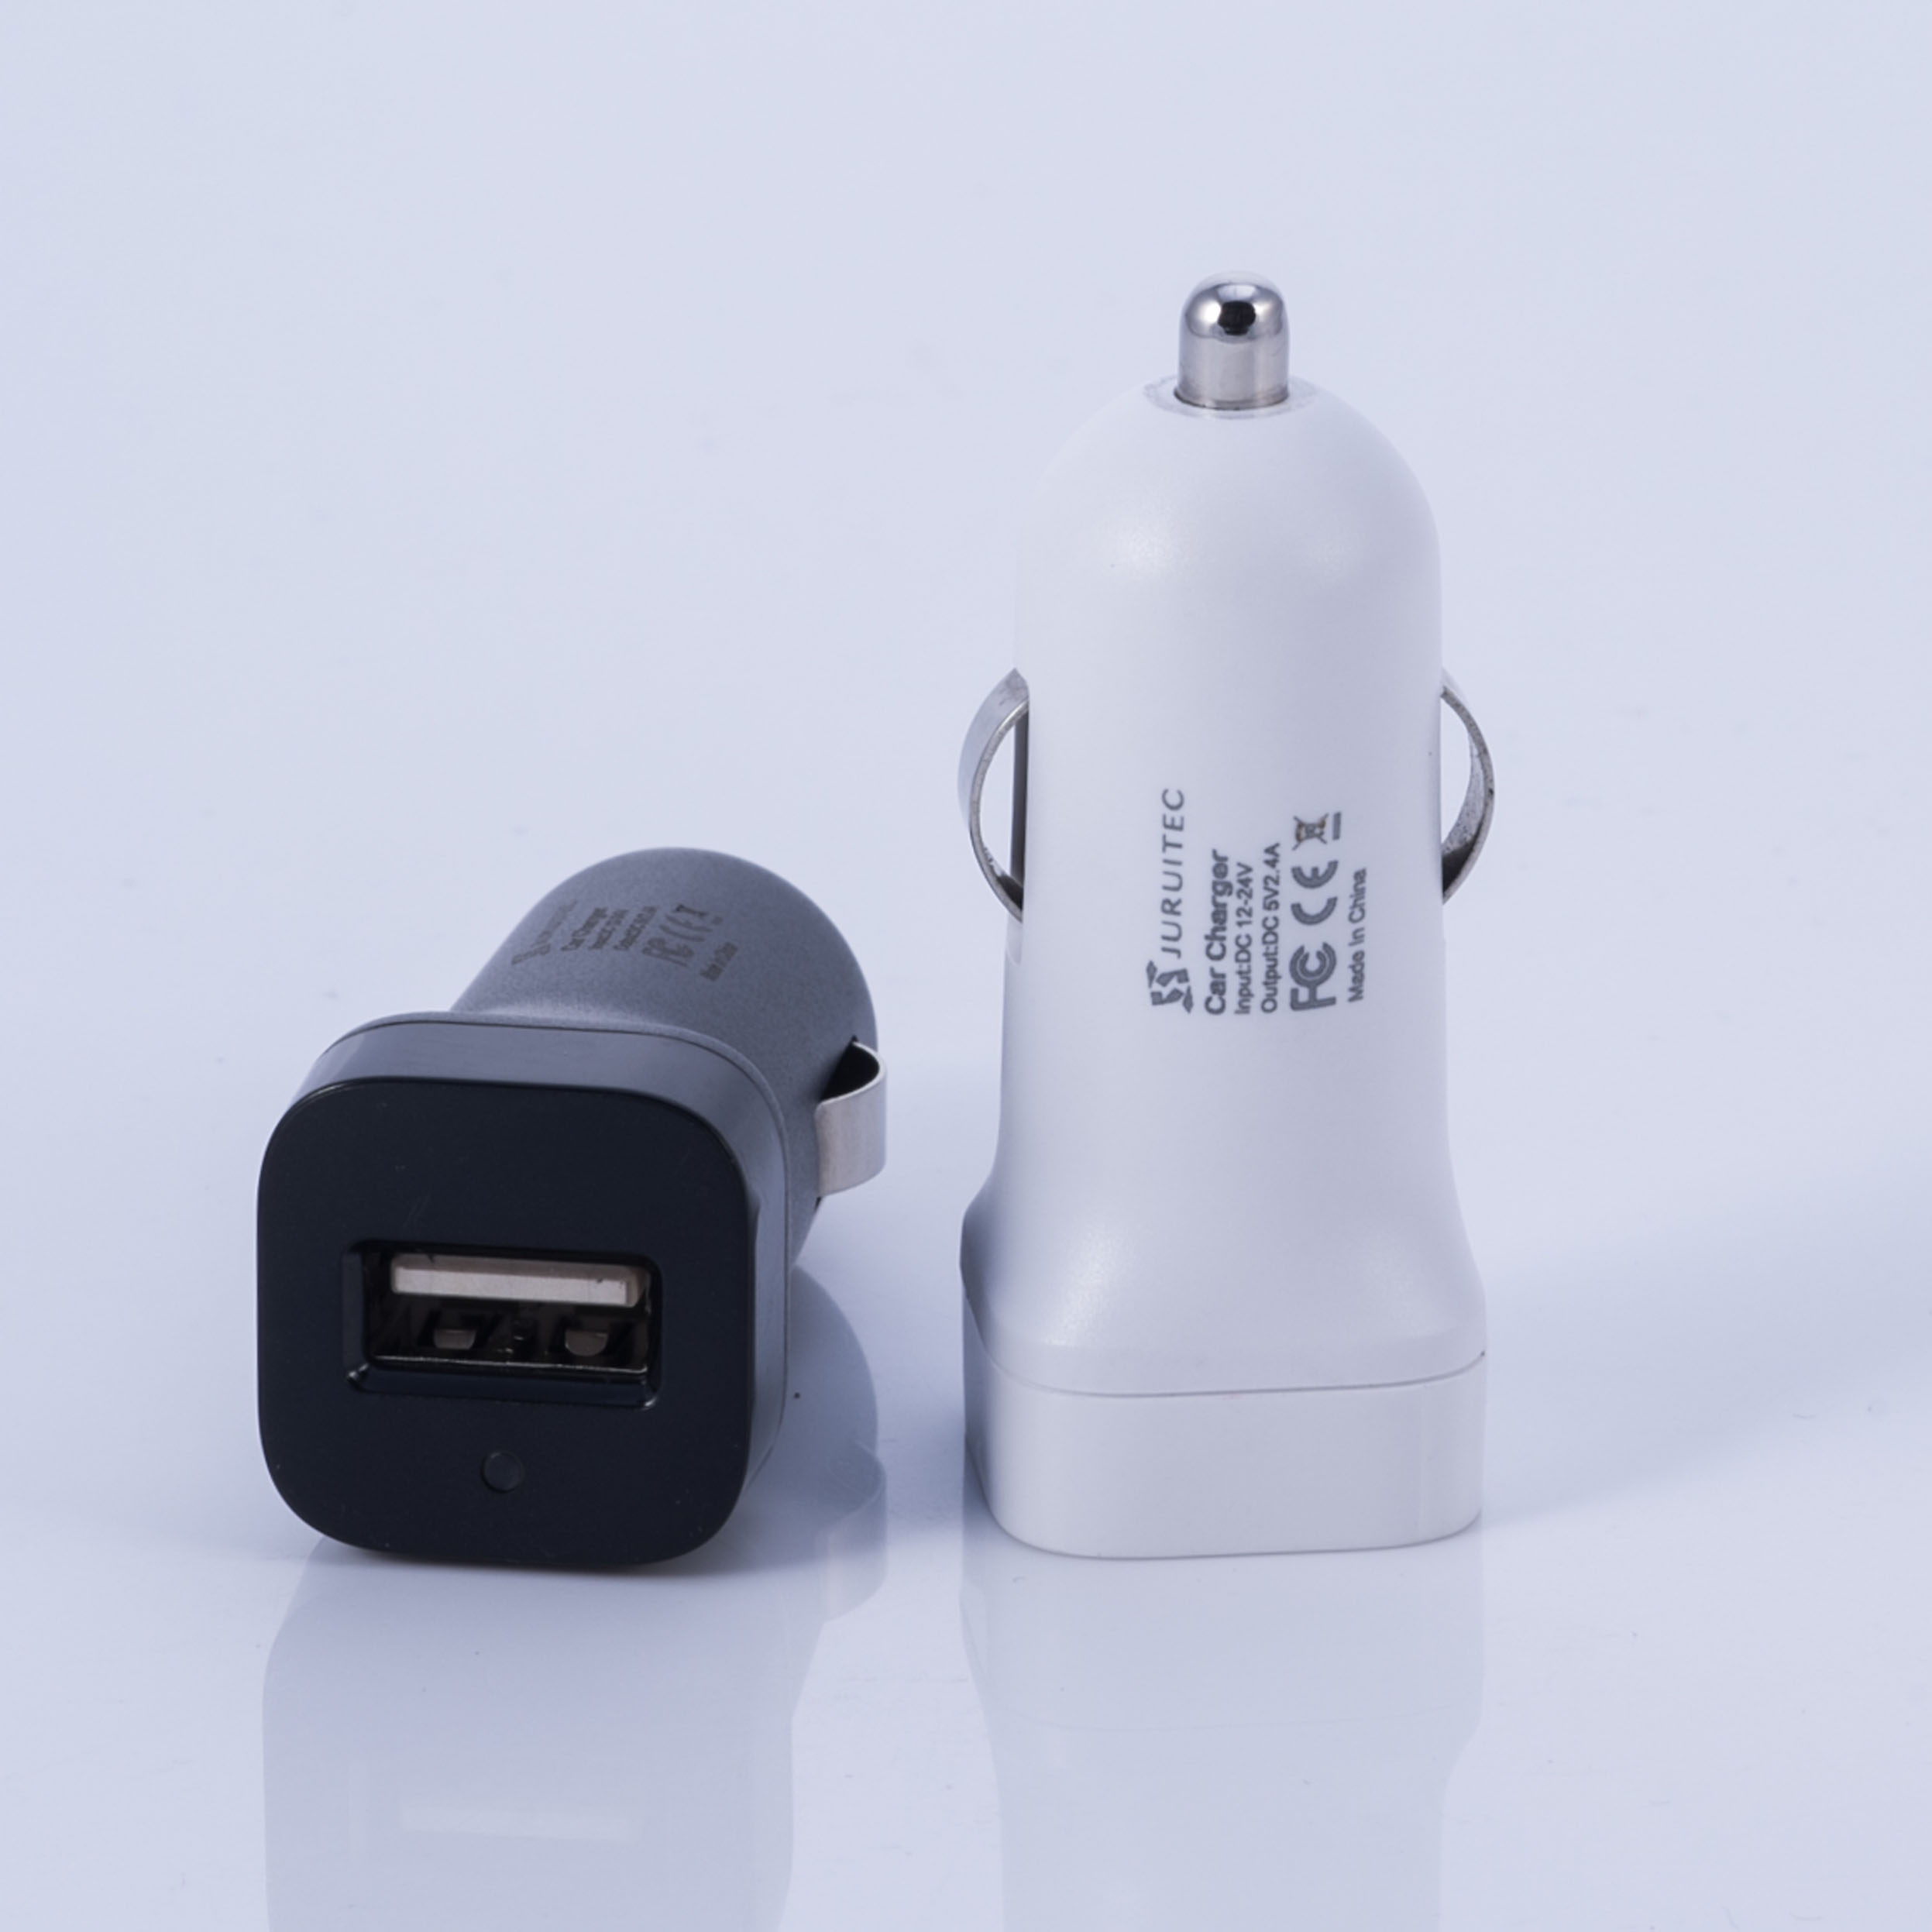 DC12V 24V Car Charger Pass Ce Certificate